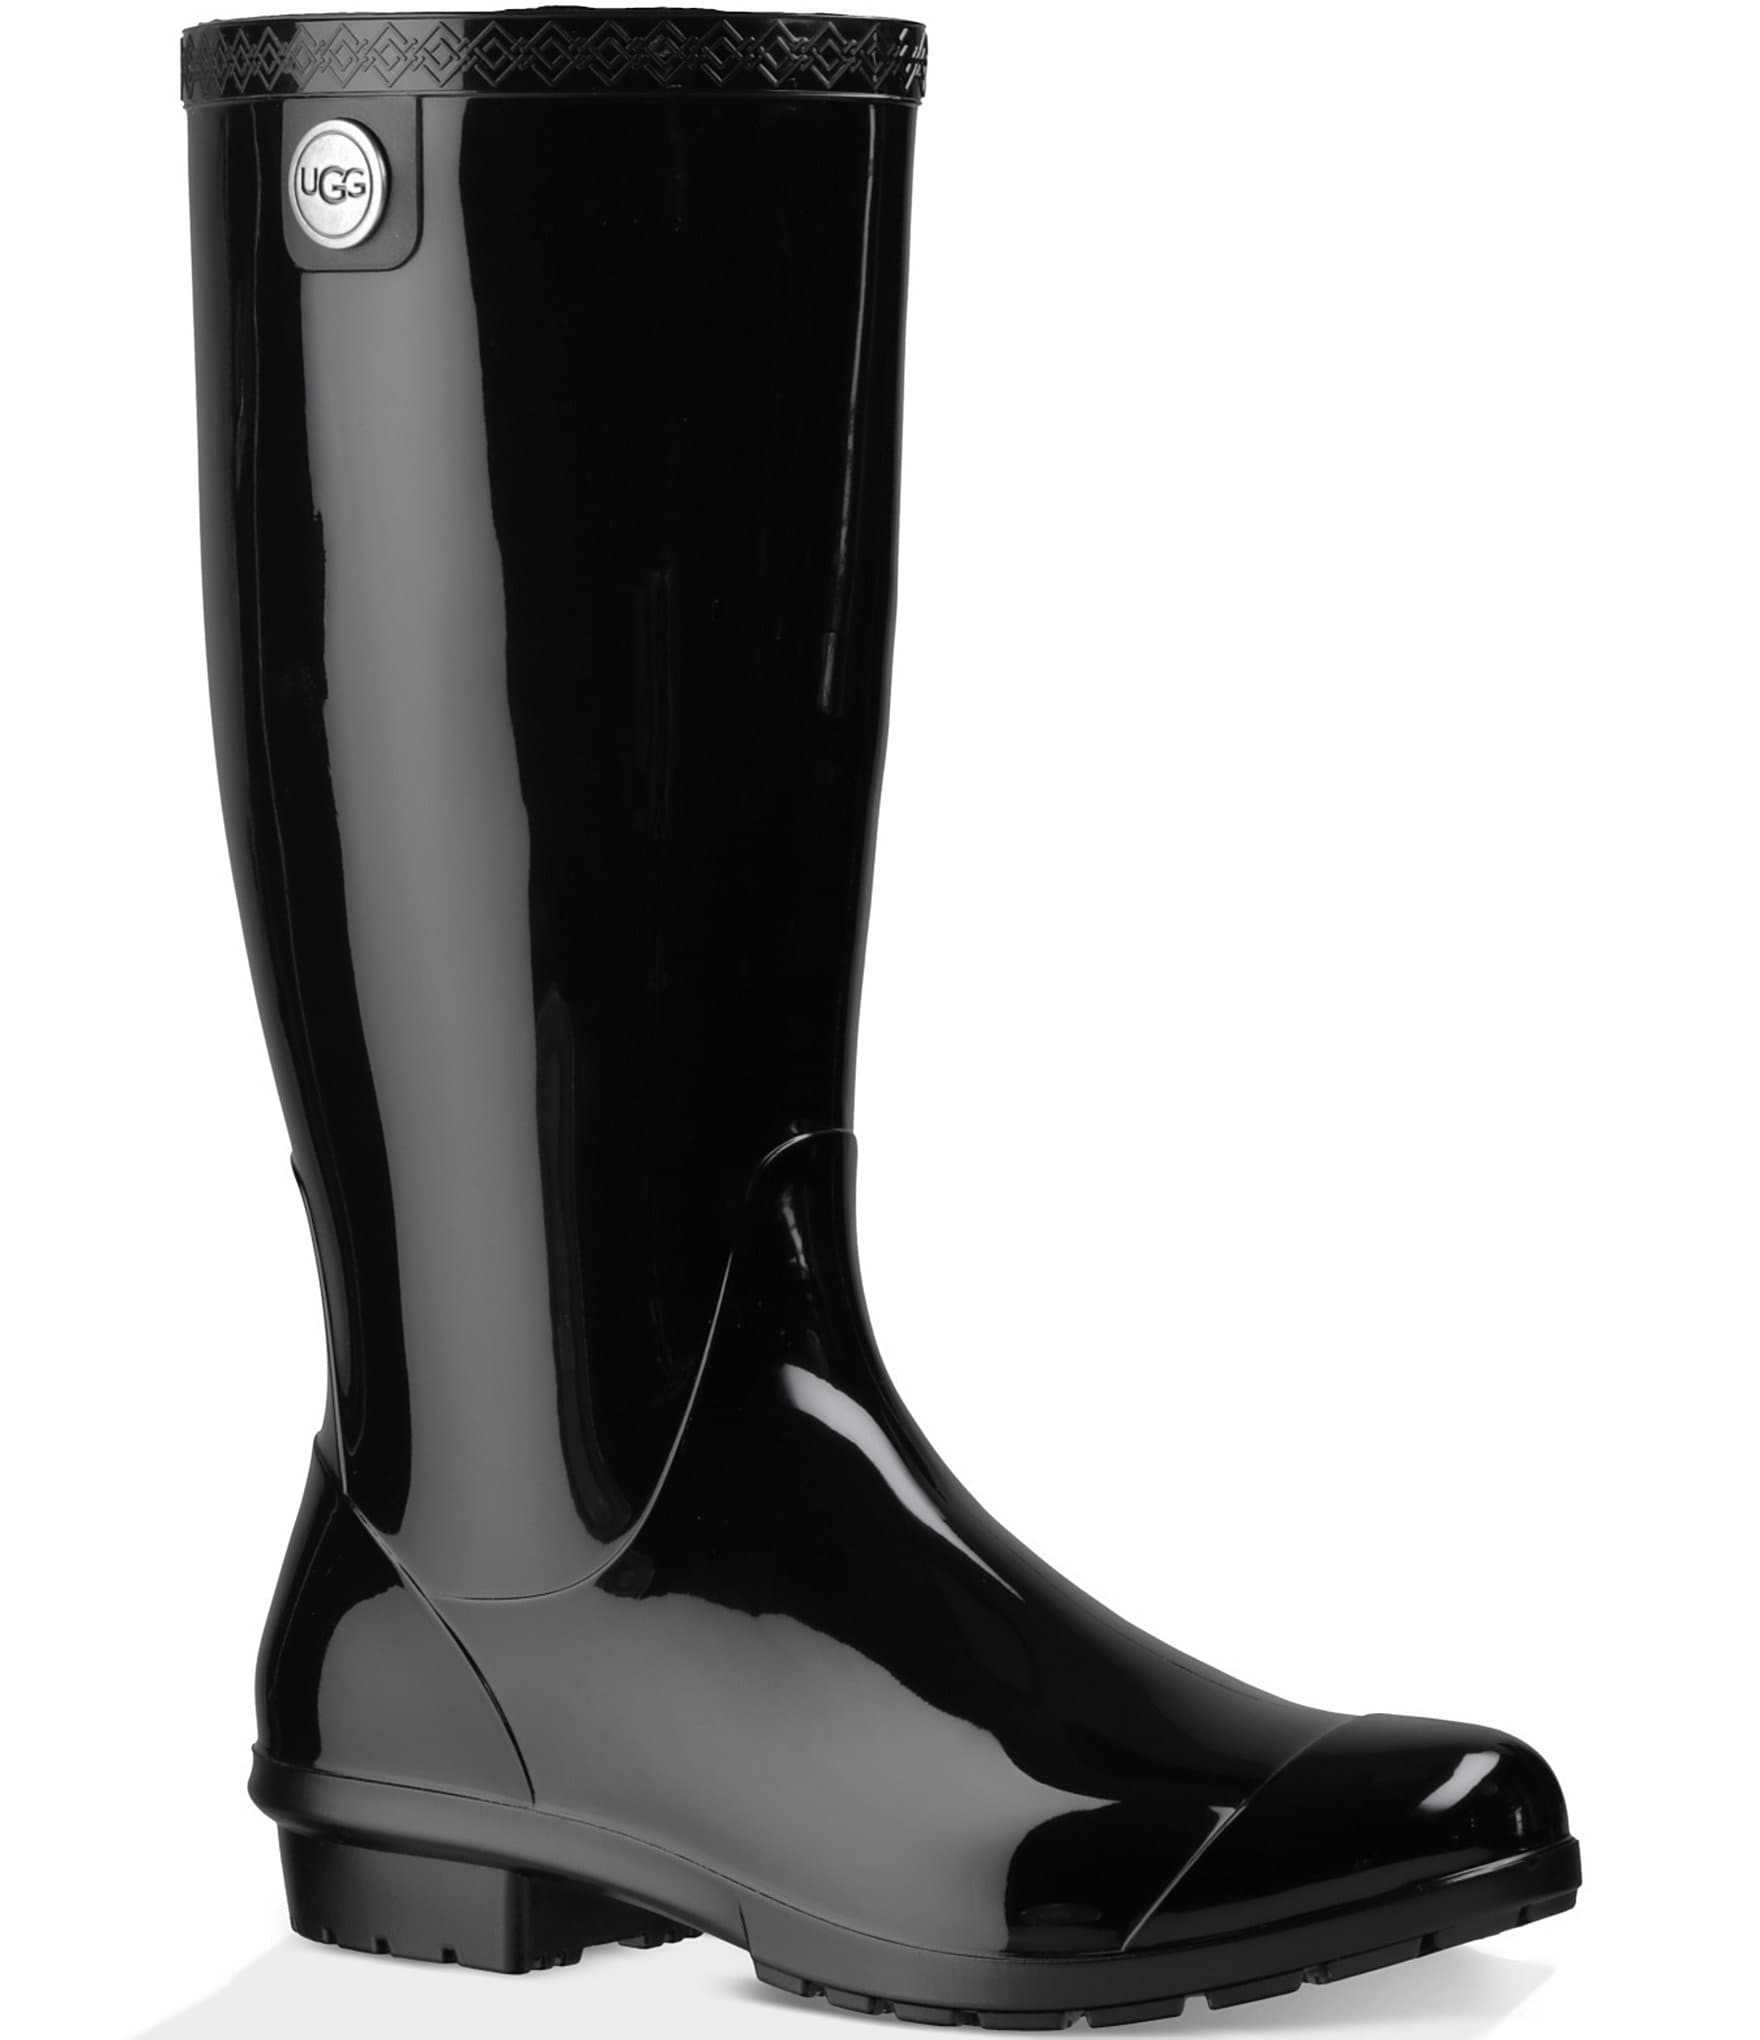 Womens Boots Booties Dillards - Free custom invoice template official ugg outlet online store